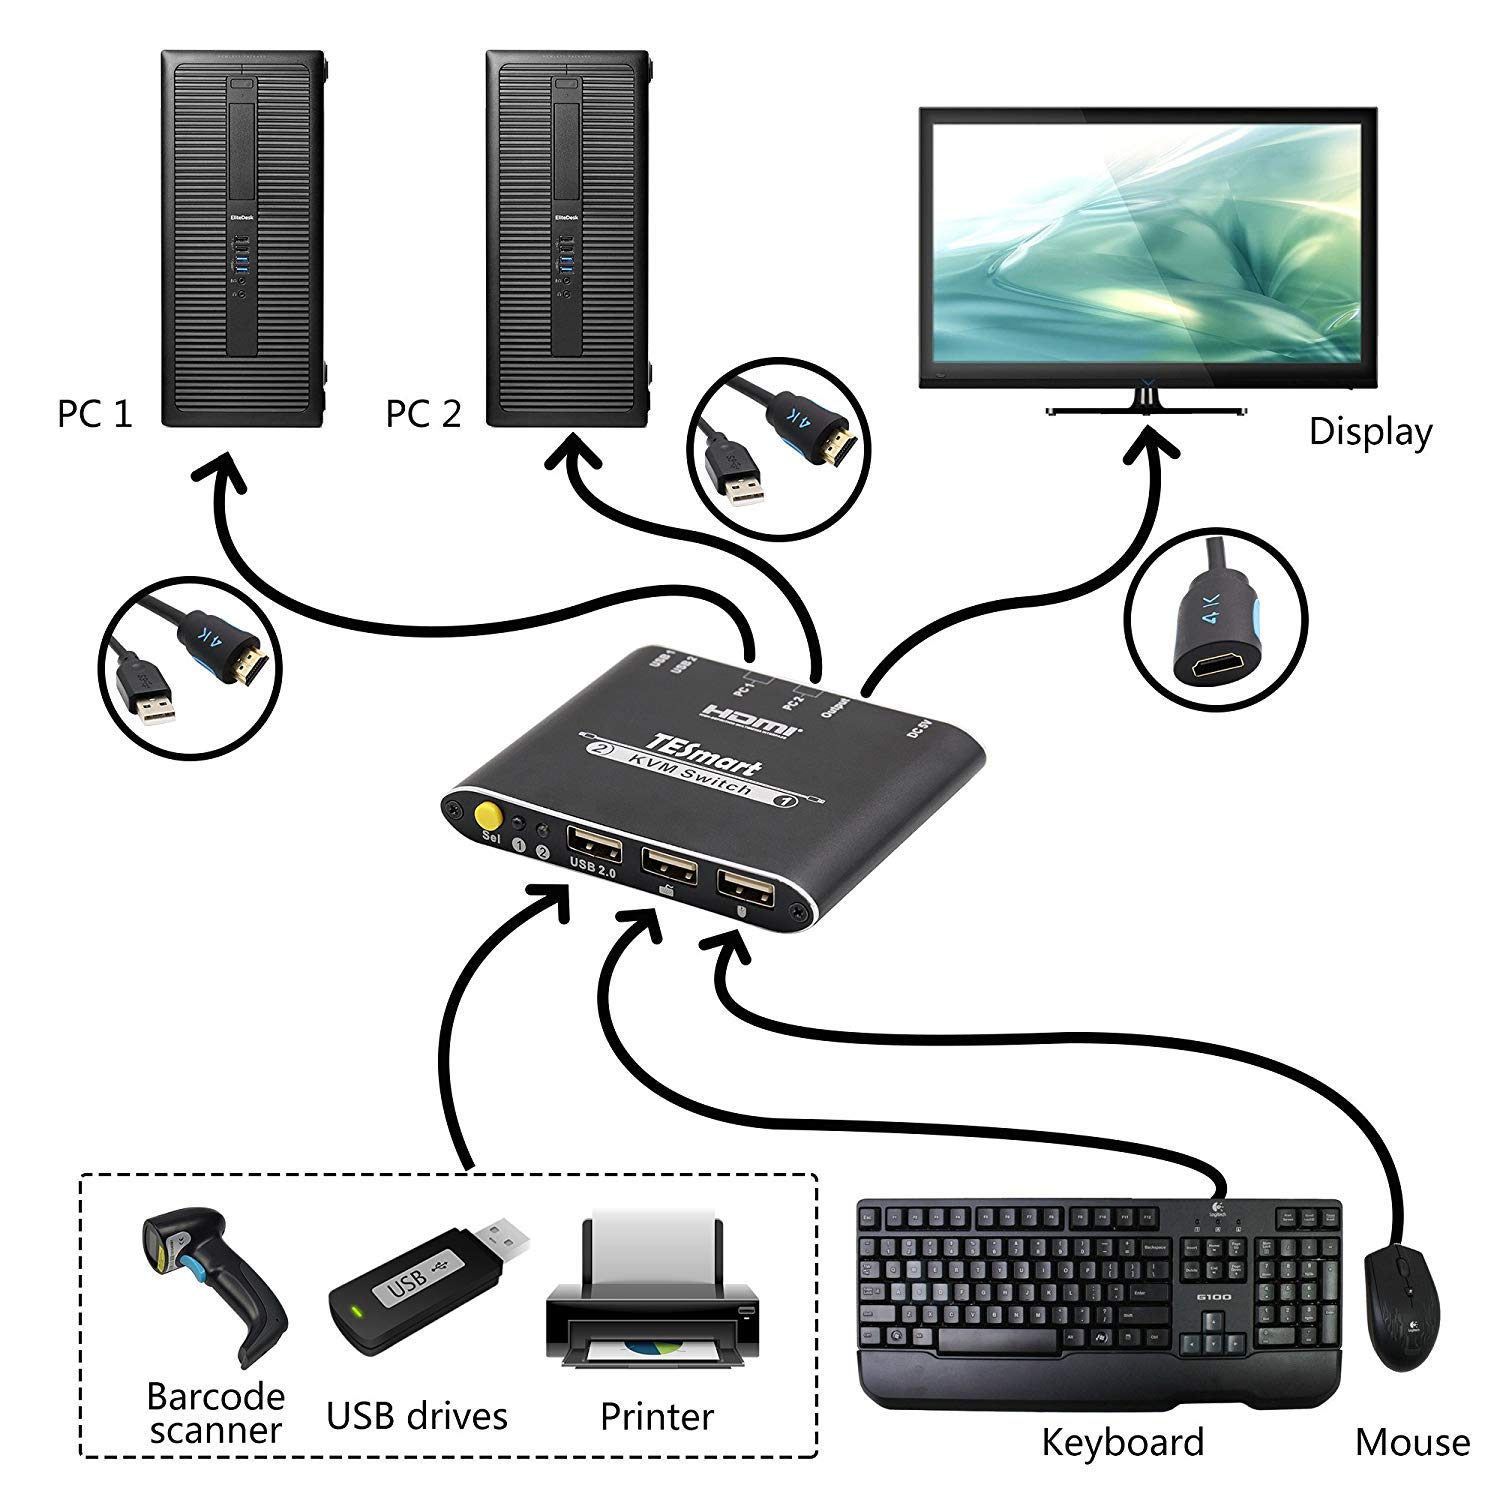 TESmart 4K Ultra HD 2-Port 2x1 HDMI Cable KVM Switch with Cables 2x1 3840x2160@30HZ Supports USB 2.0 Device Control up to 2 Computers//Servers//DVR